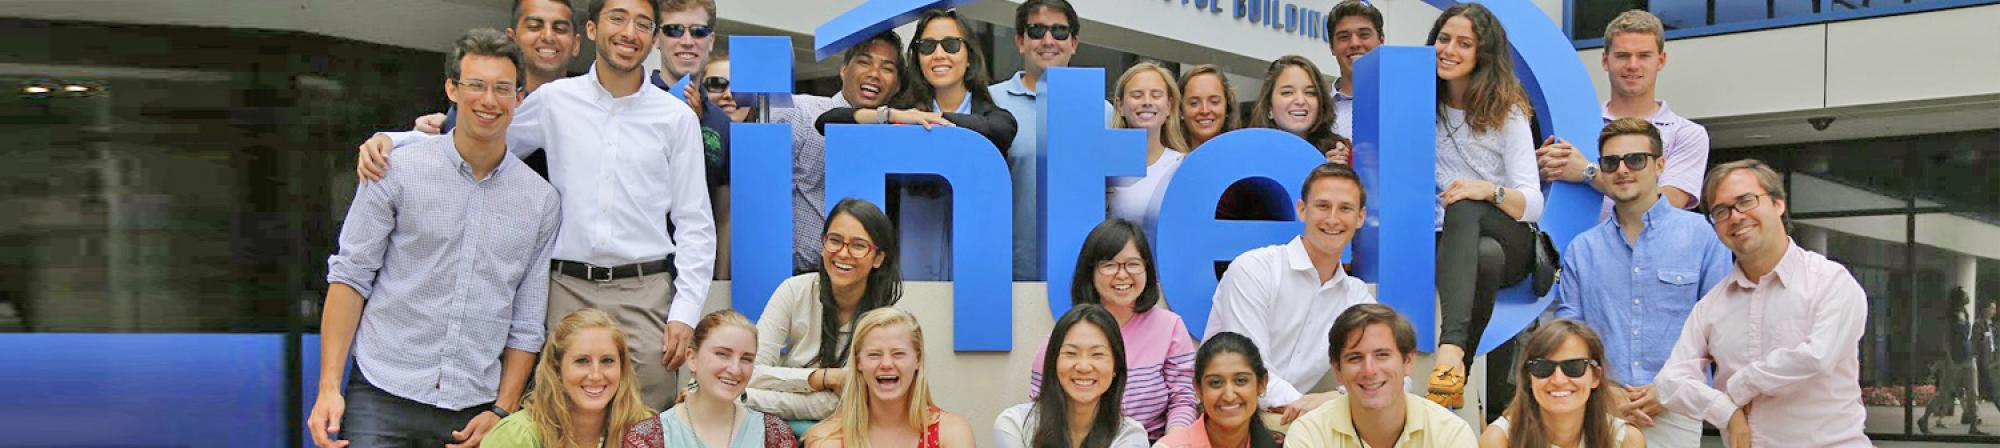 Students pose in front of Intel headquarters